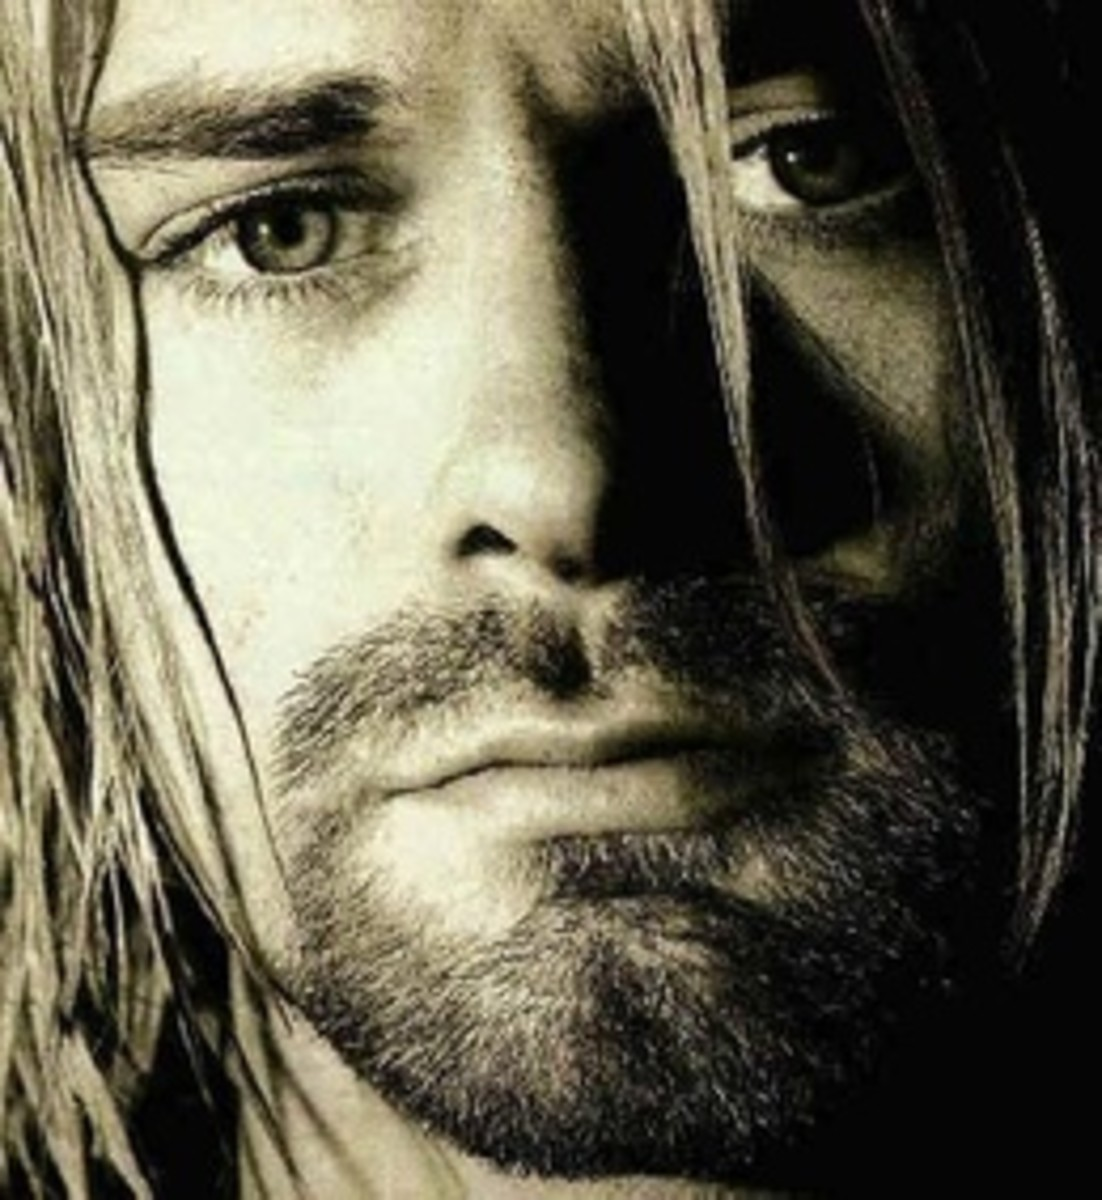 Kurt Donald Cobain, February 20th1967- April 4/5 1994